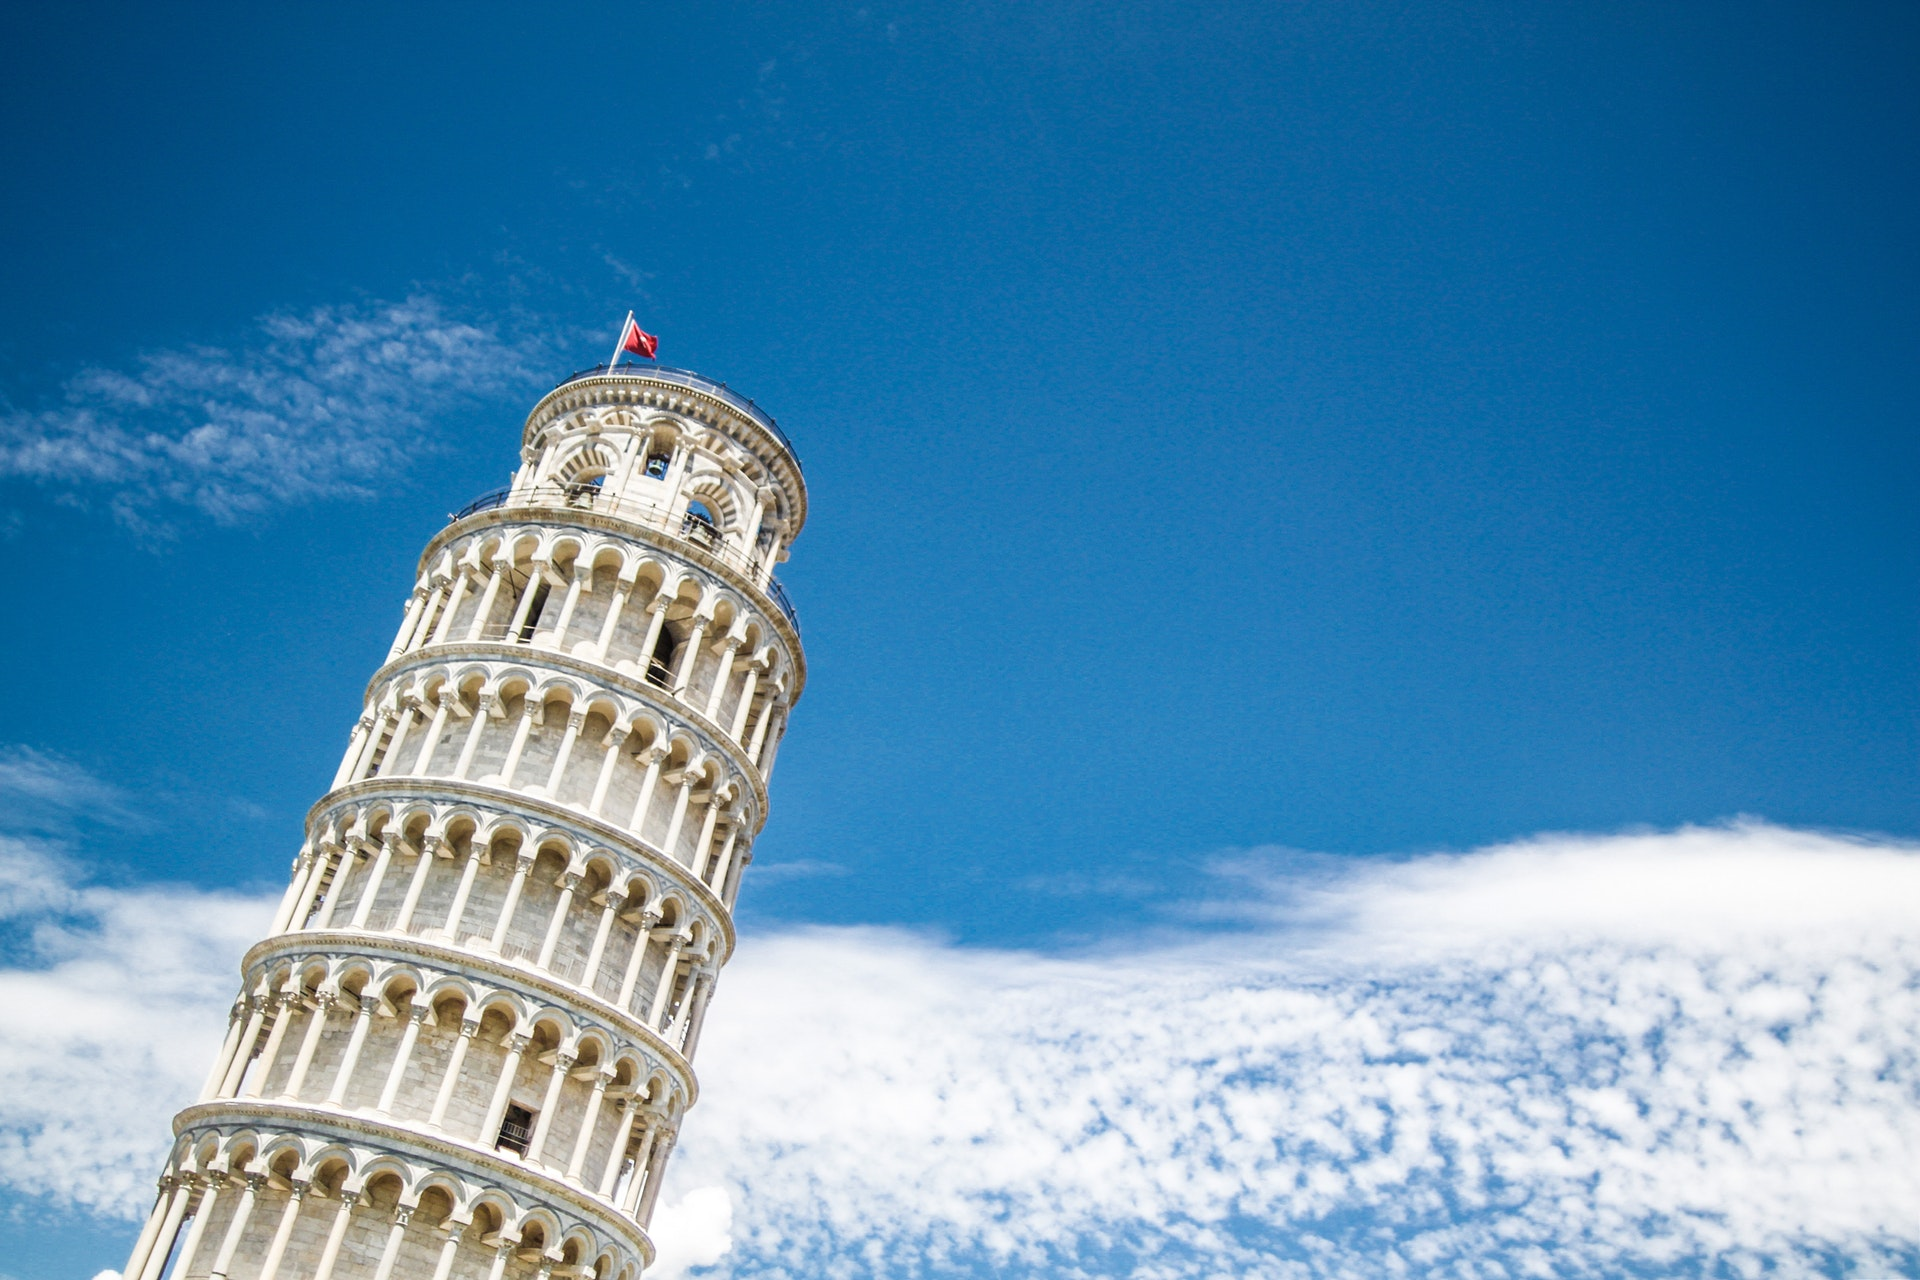 an image of leaning tower of pisa